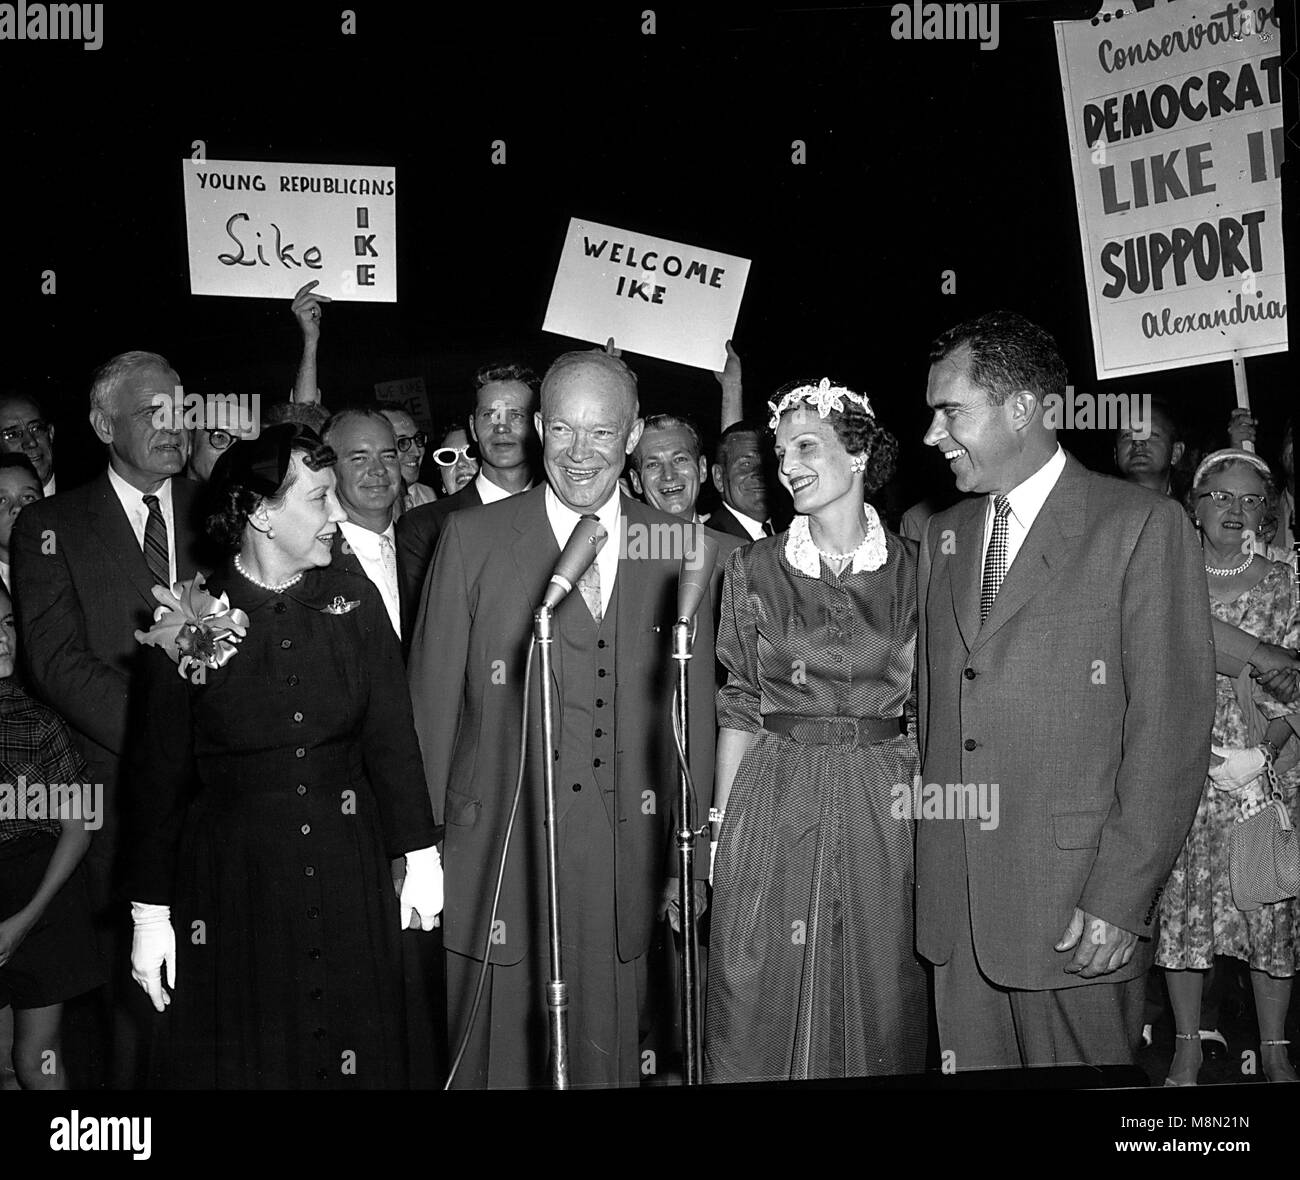 Washington, D.C. - August 28, 1956 -- Eisenhowers and Nixons arrive at Washington National Airport on August 28, - Stock Image